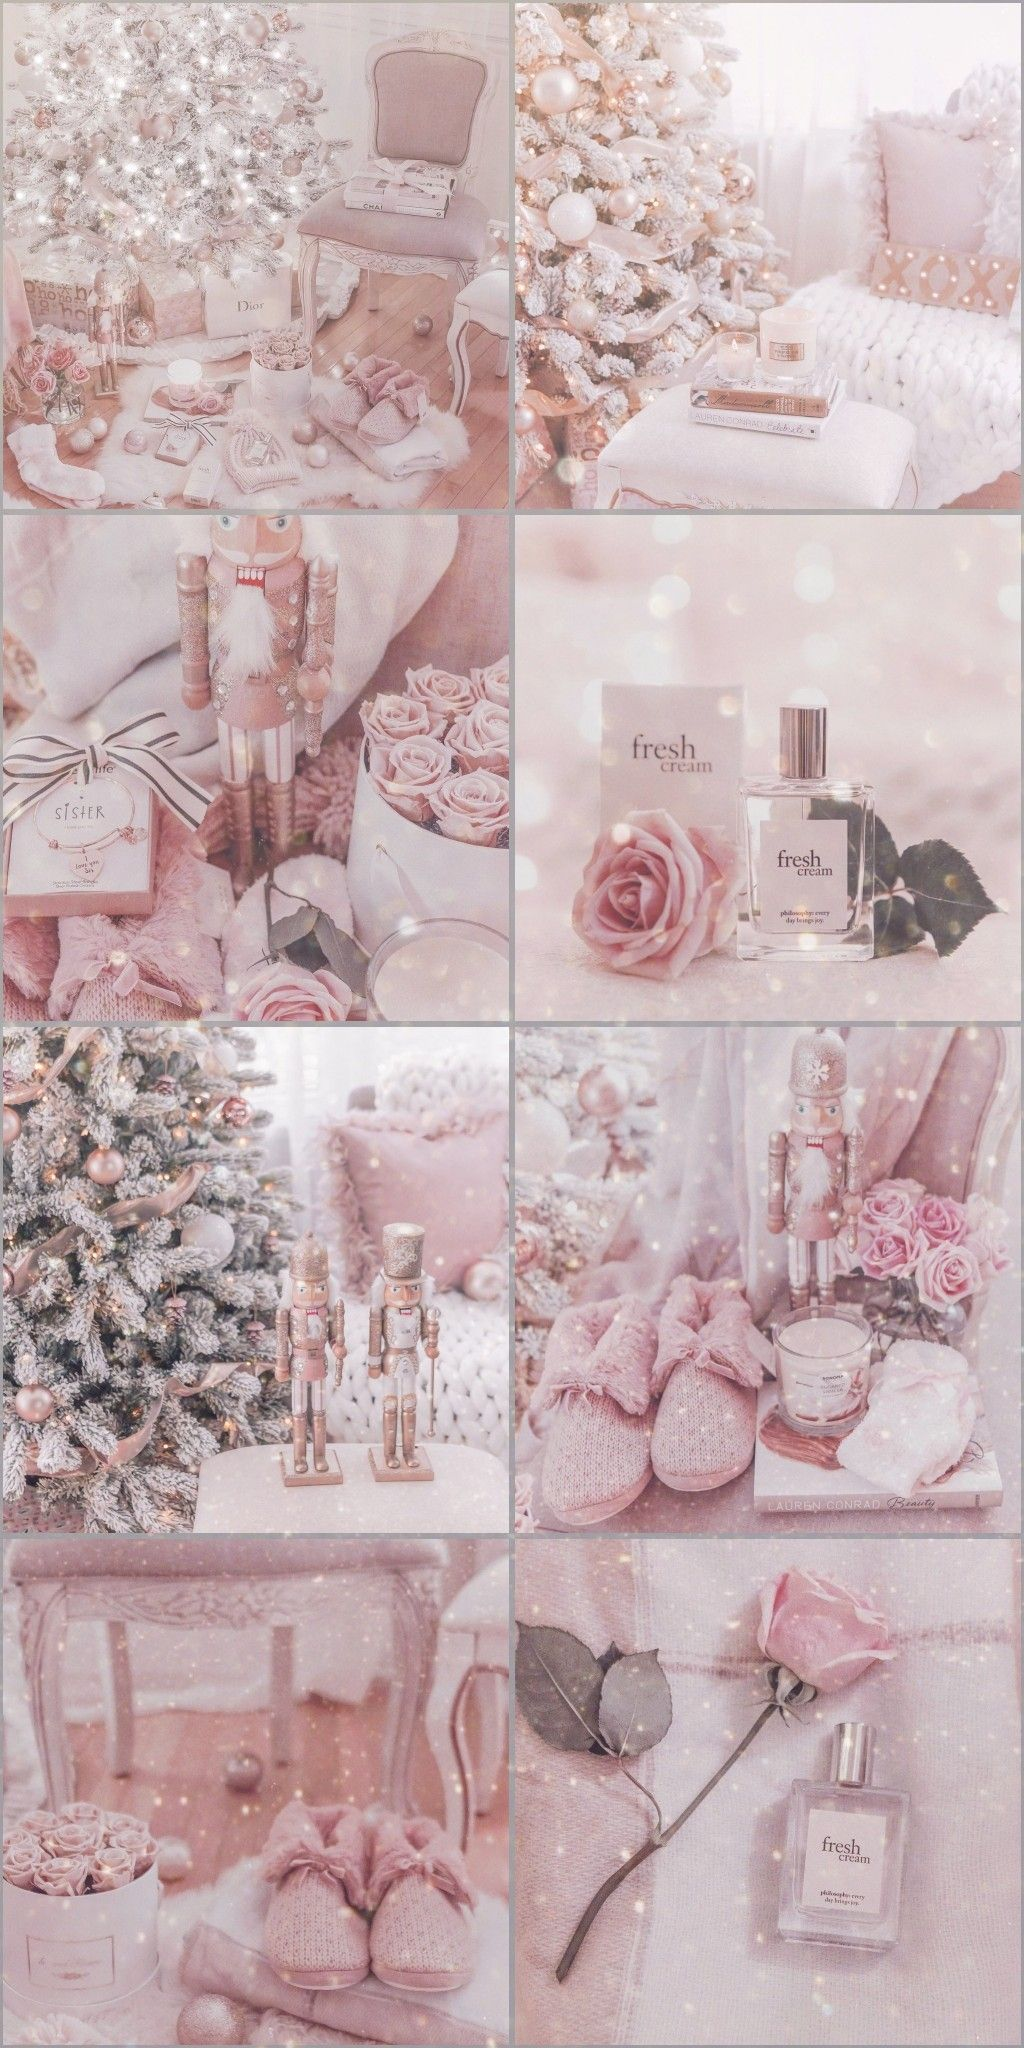 Pin by meikawaiiworld on Collage Wallpapers   Pink christmas, Pink christmas decorations ...